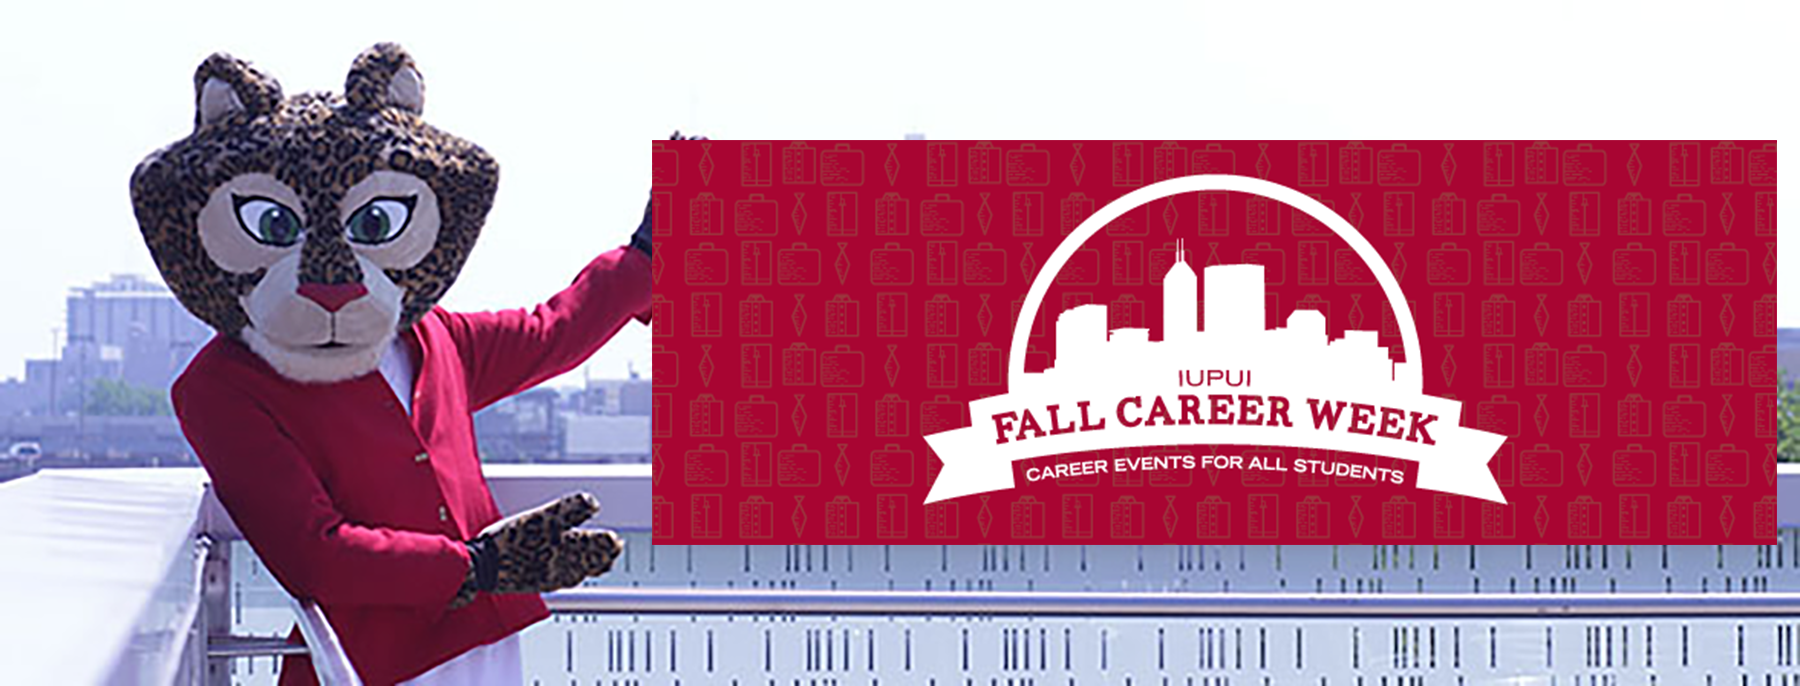 Jazzy the Jaguar mascot pointing to fall career week banner